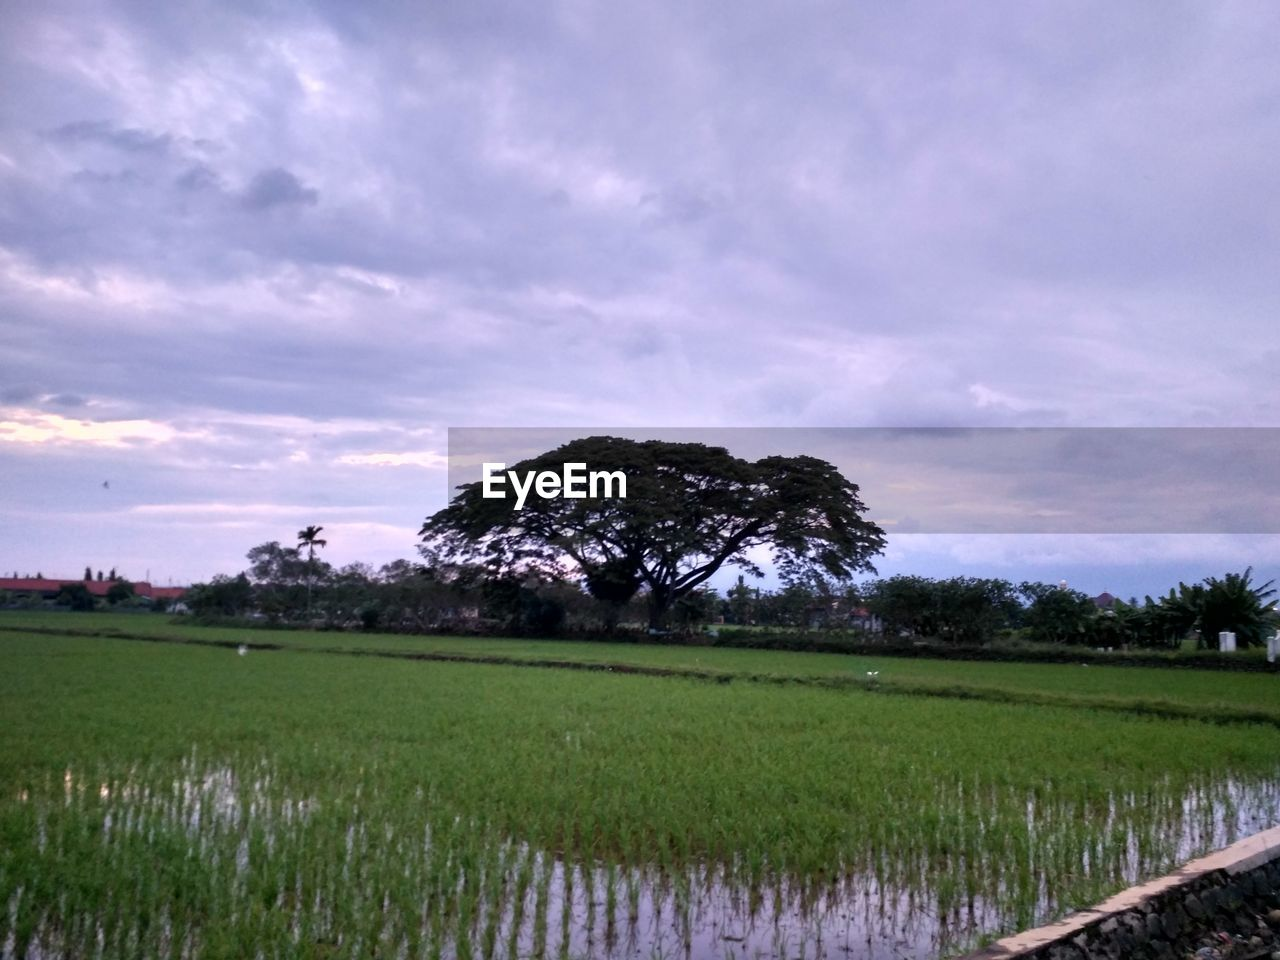 sky, landscape, plant, field, cloud - sky, tranquil scene, scenics - nature, land, beauty in nature, tranquility, environment, rural scene, agriculture, nature, growth, grass, green color, no people, farm, tree, outdoors, purple, plantation